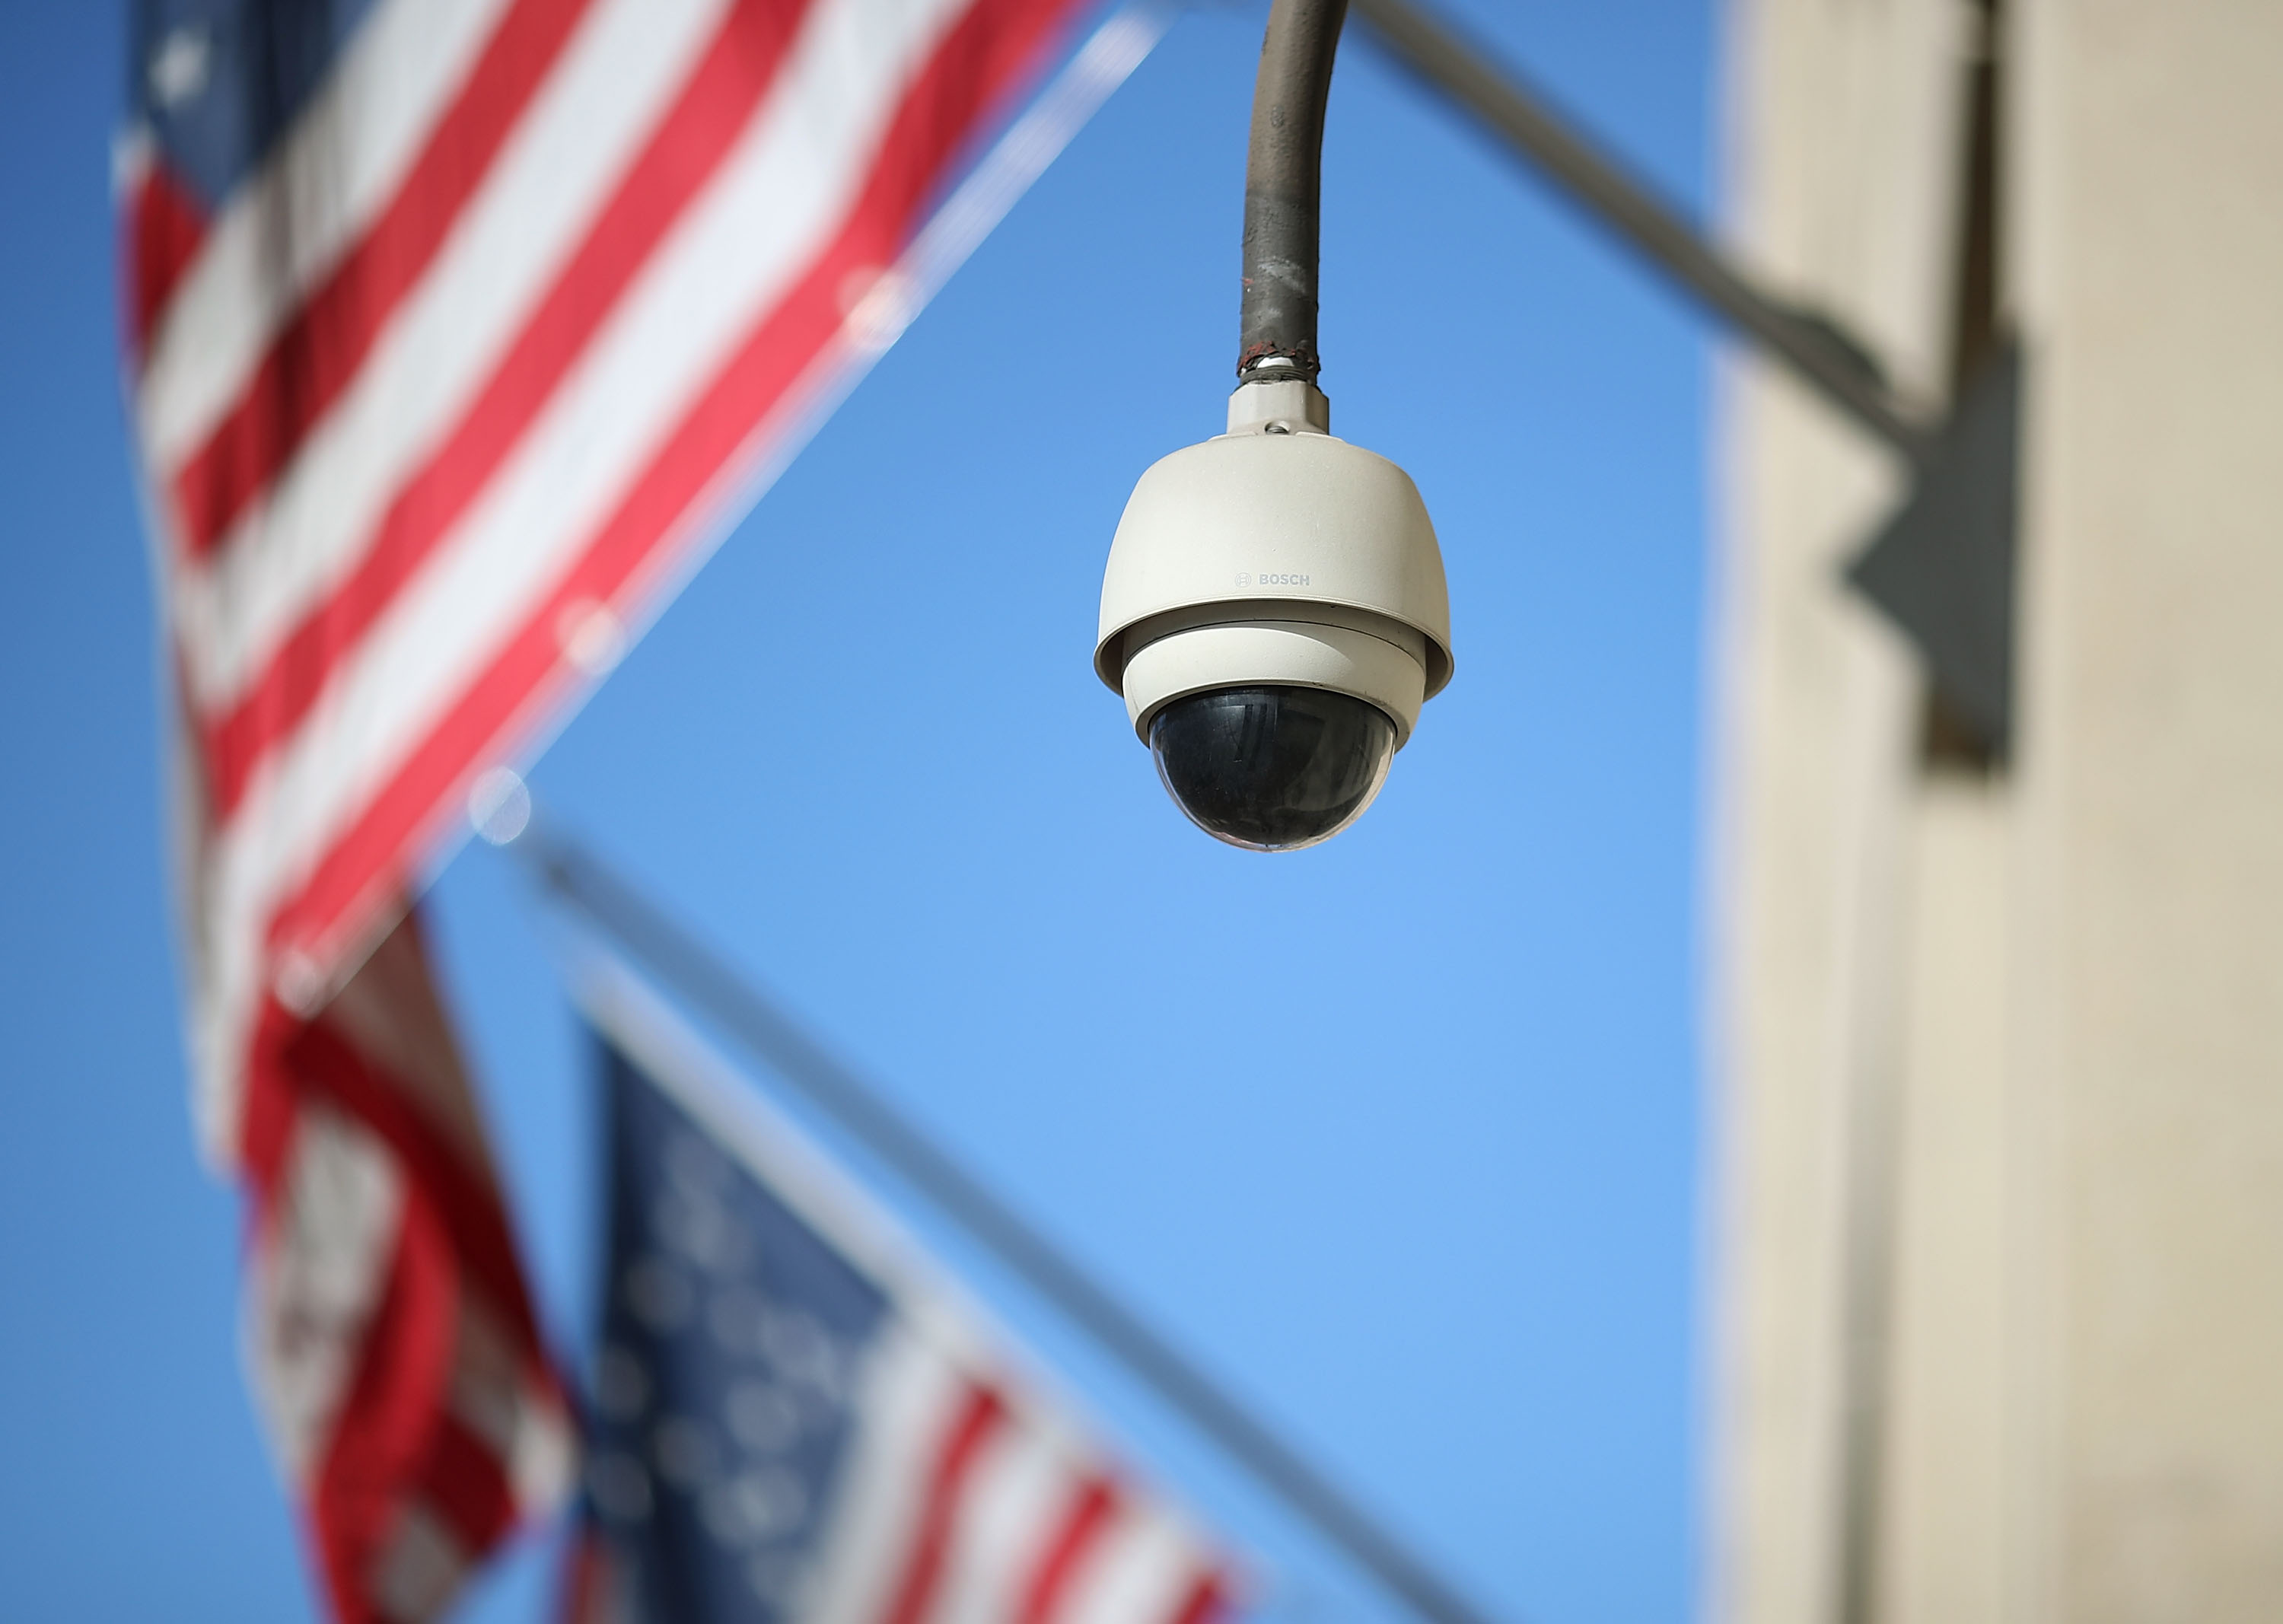 Boston bans police and city use of facial recognition software